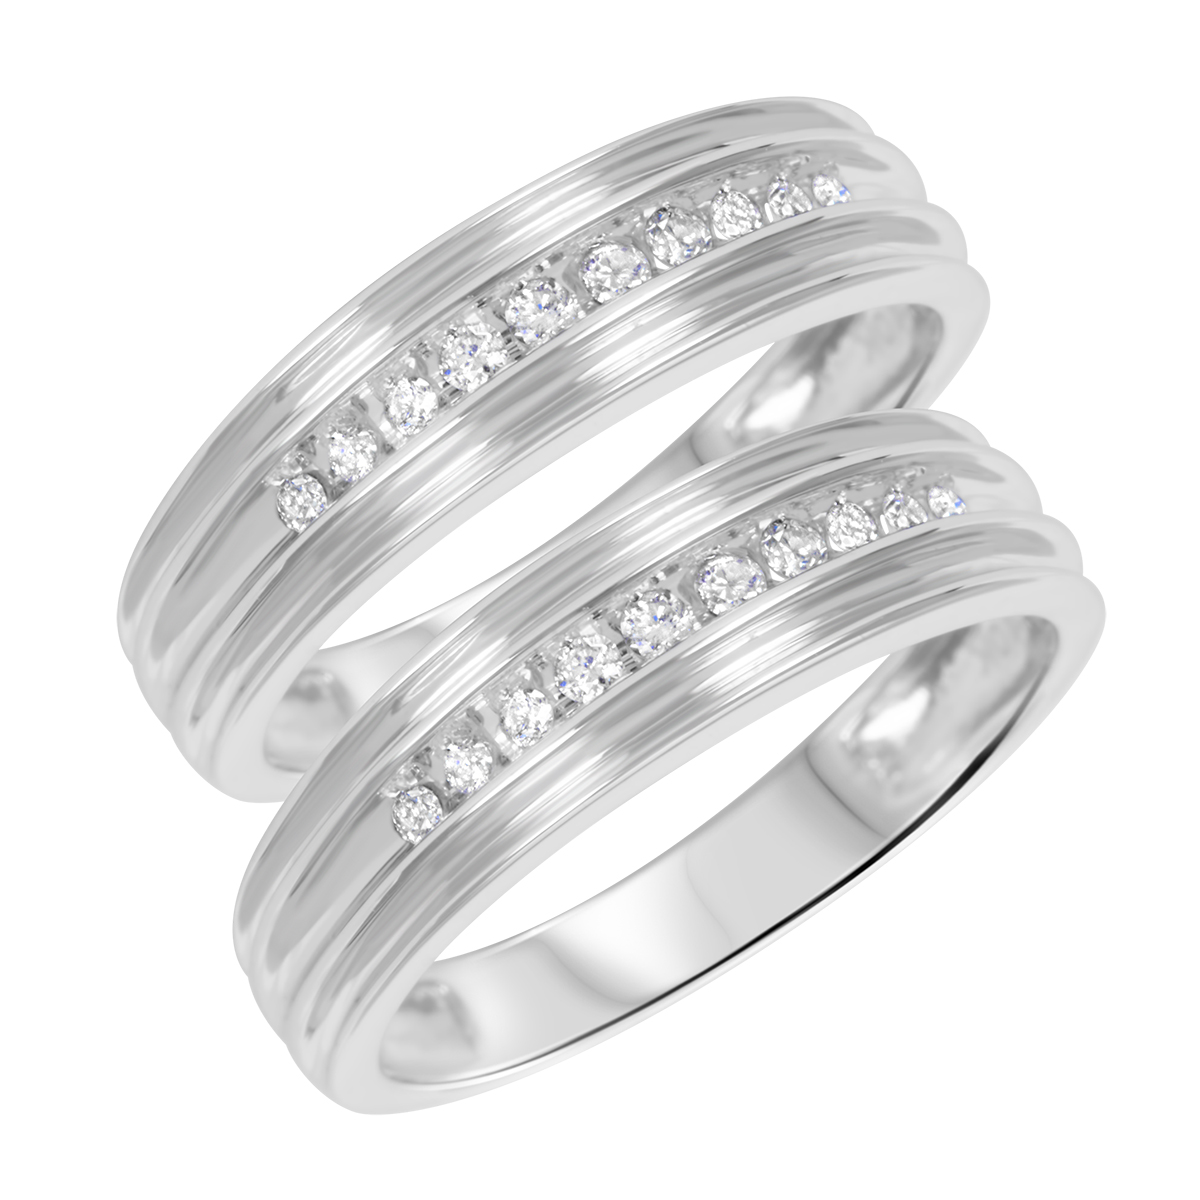 1/5 CT. T.W. Round Cut Ladies Same Sex Wedding Band Set 10K White Gold